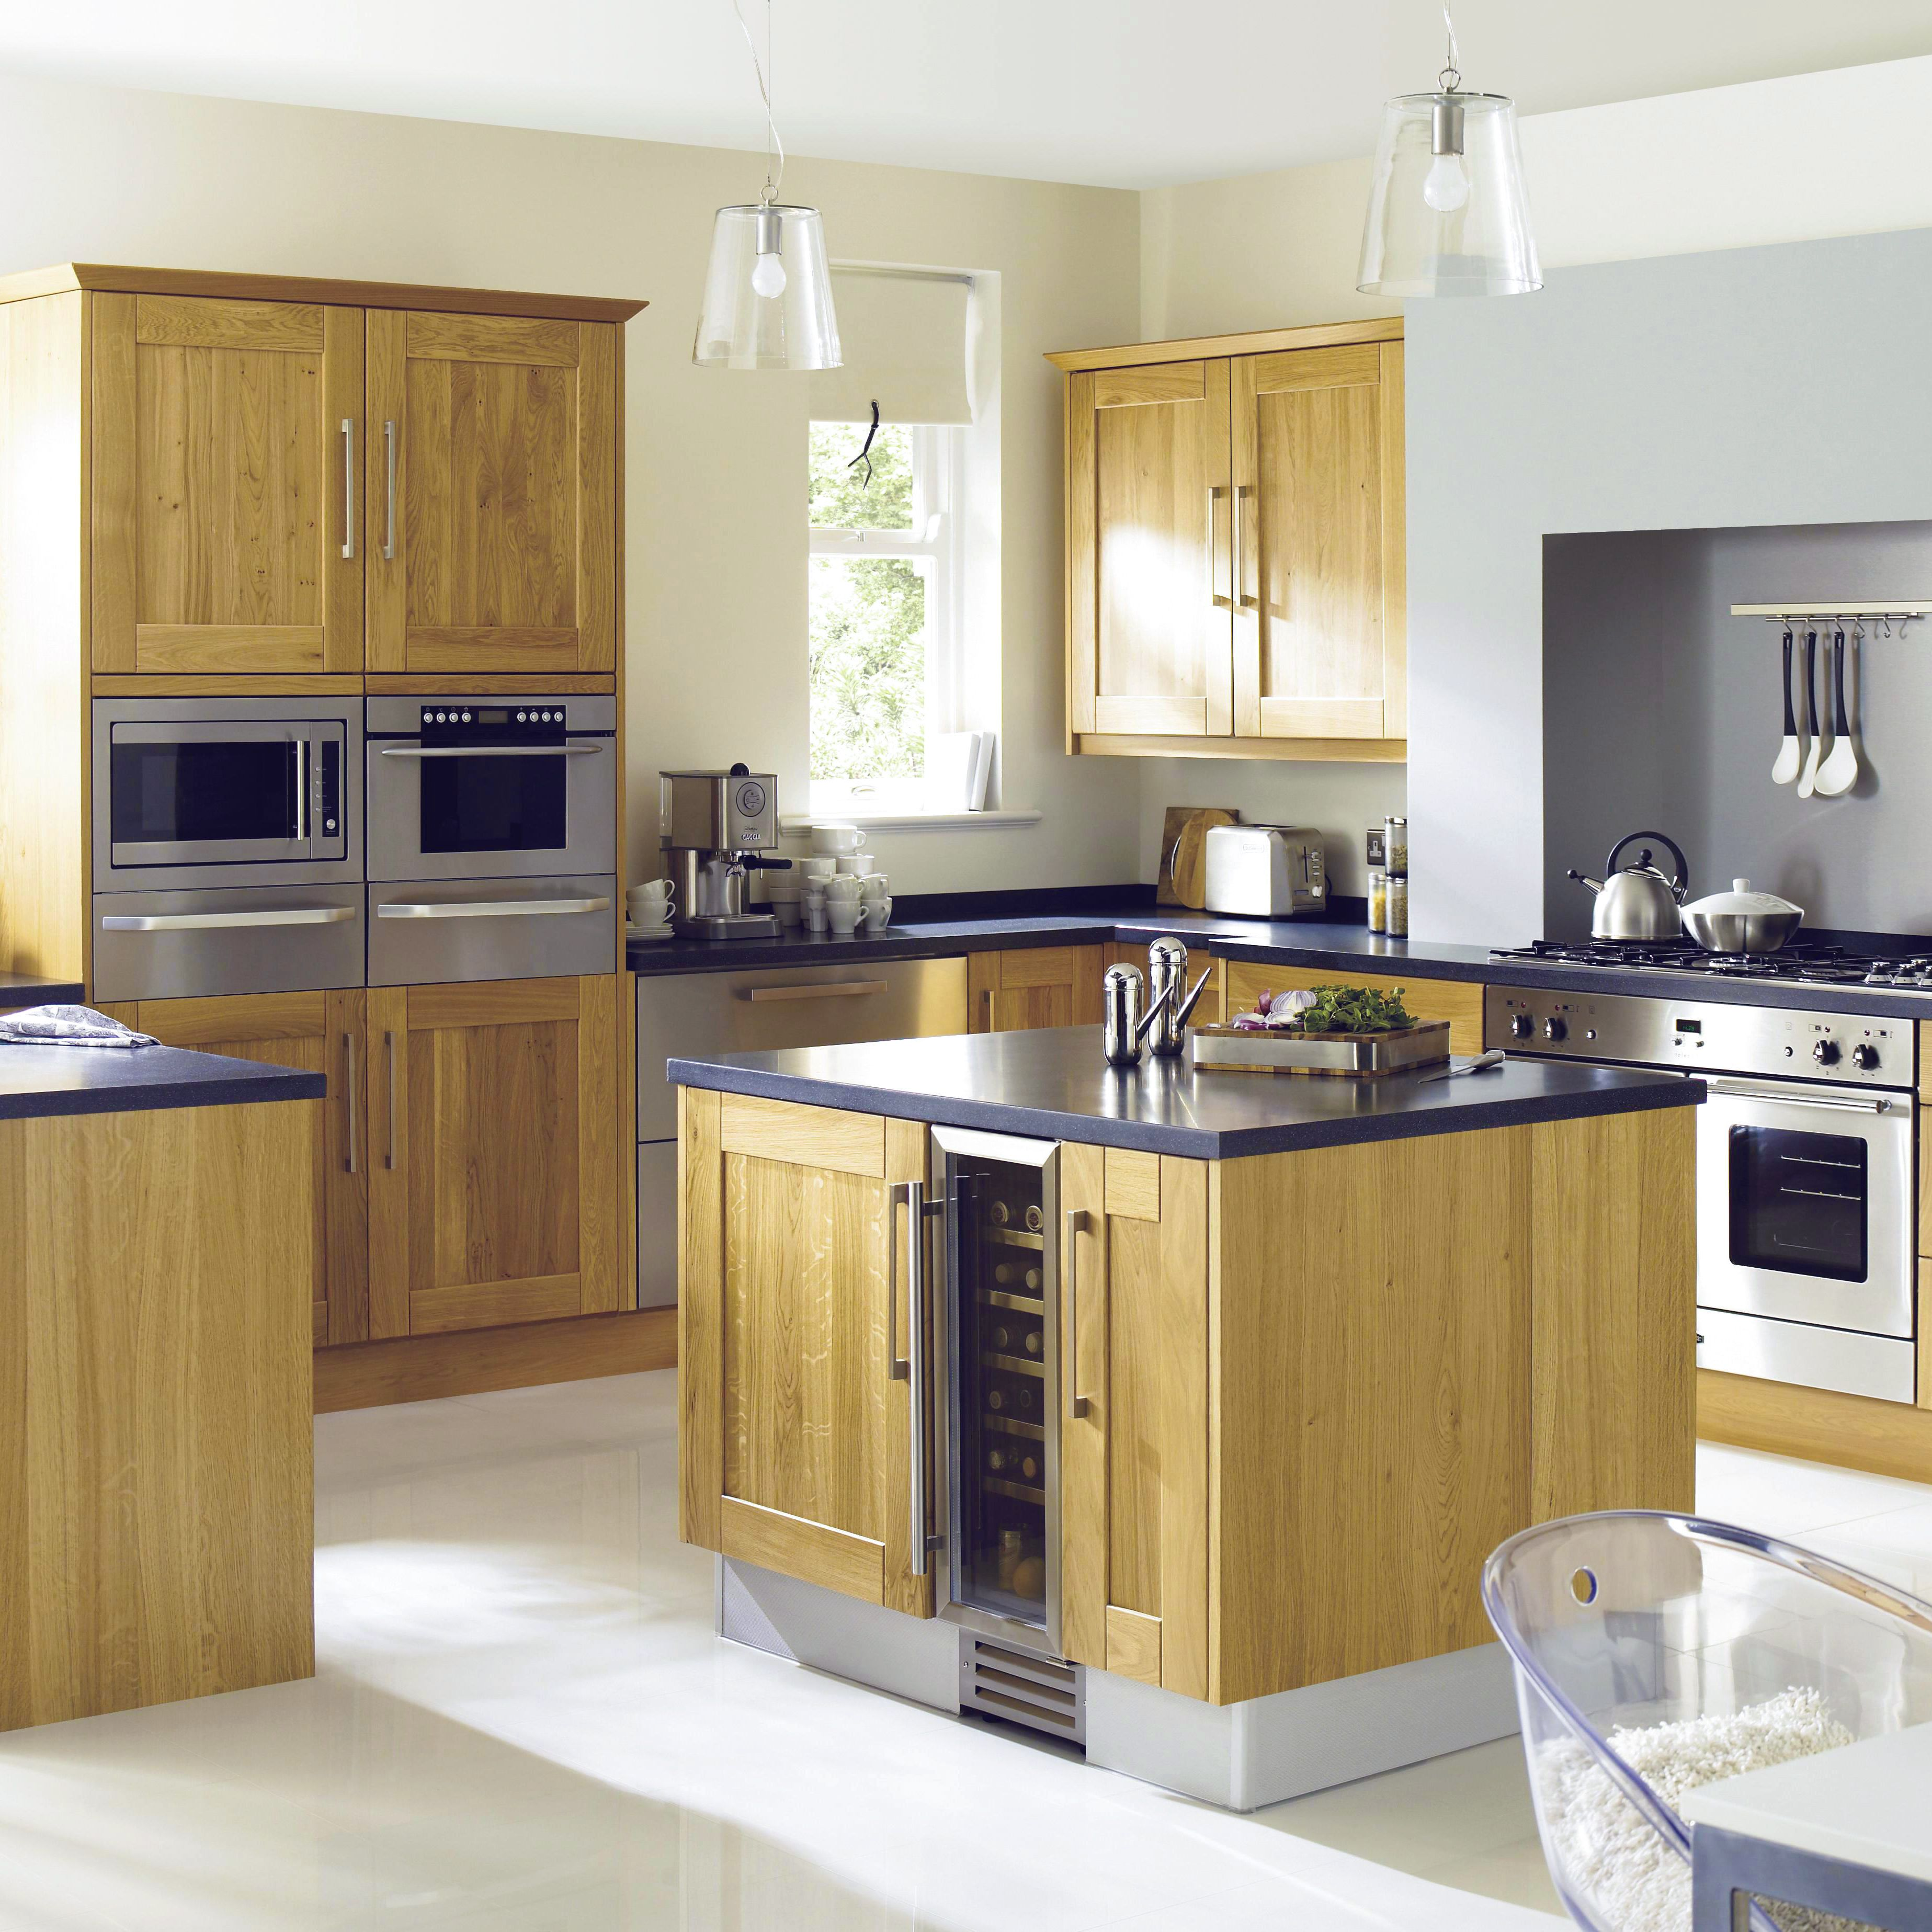 B And Q Cooke And Lewis Kitchens Reviews Small House